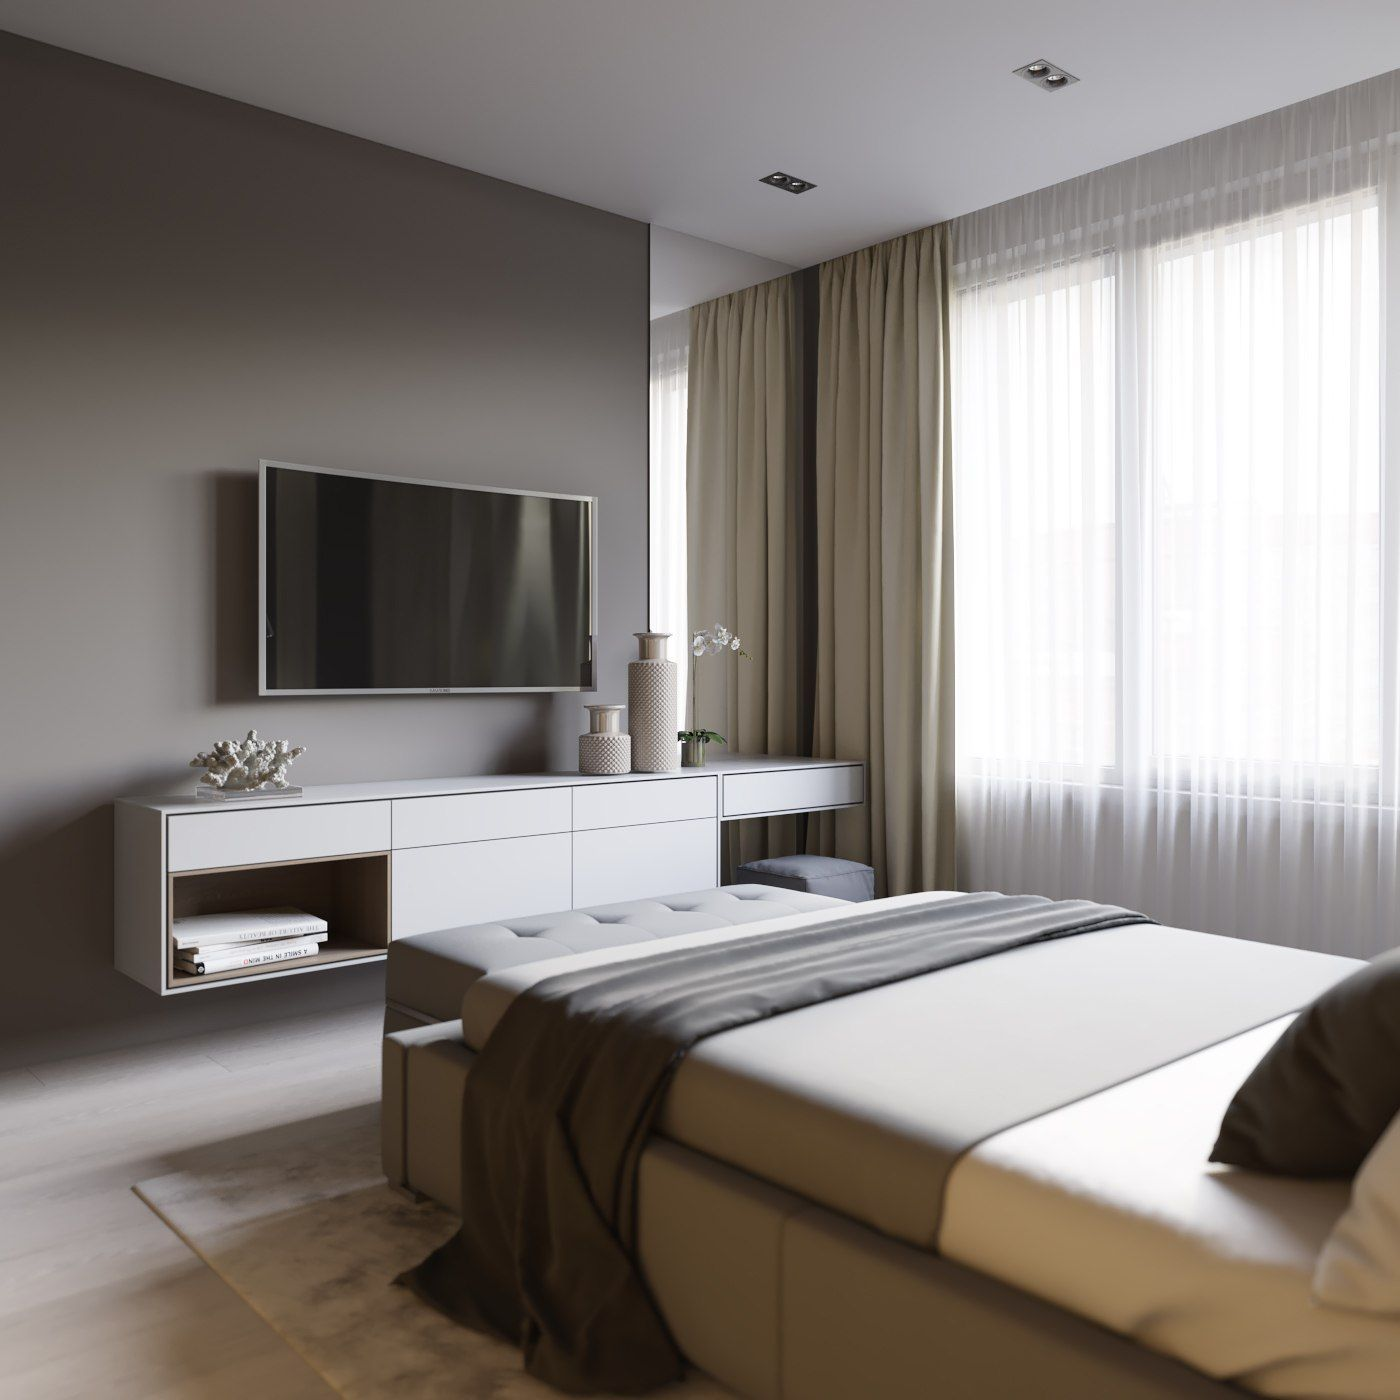 You Like This Idea You Need Help To Make Your Home Design Find  # Muebles Viu Recamaras